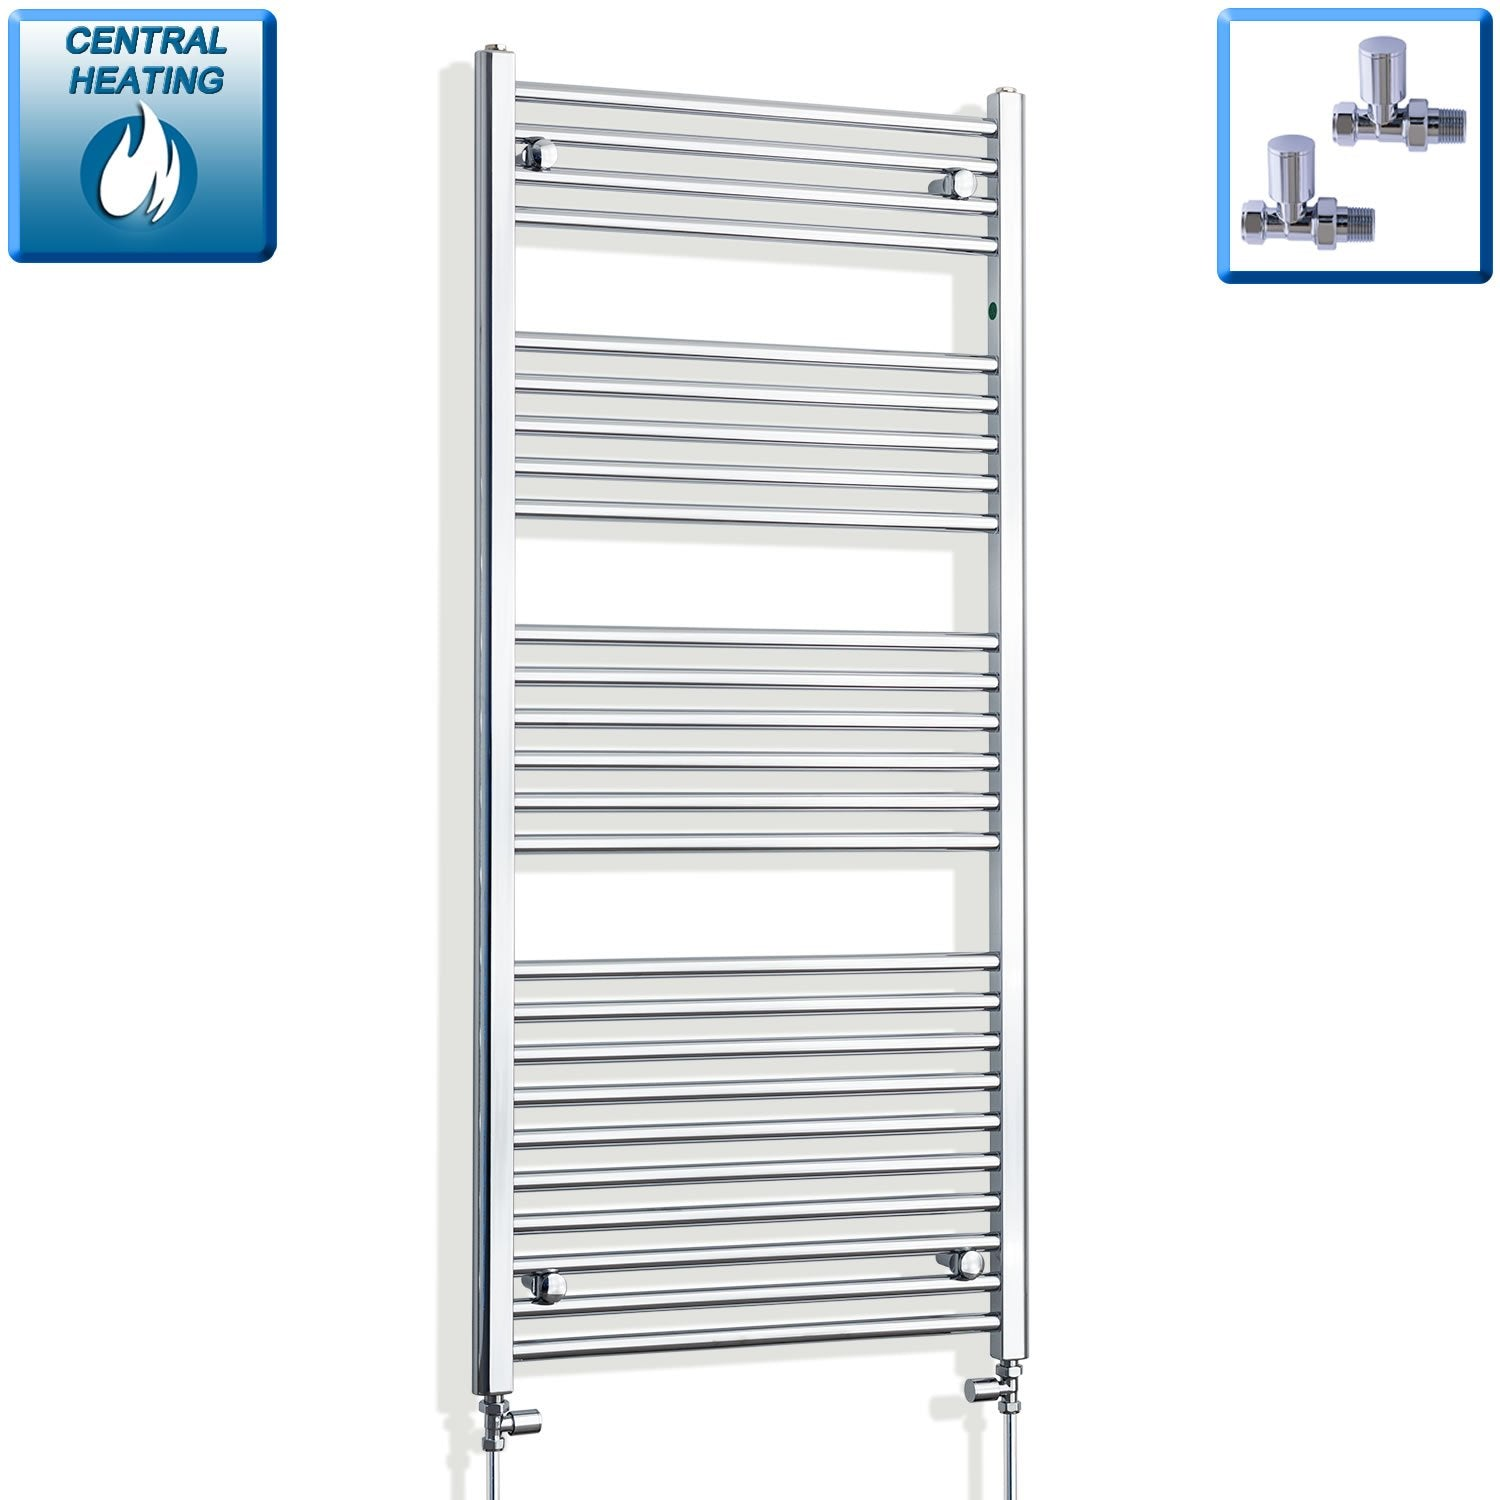 650mm Wide 1400mm High Flat Chrome Heated Towel Rail Radiator HTR,With Straight Valve